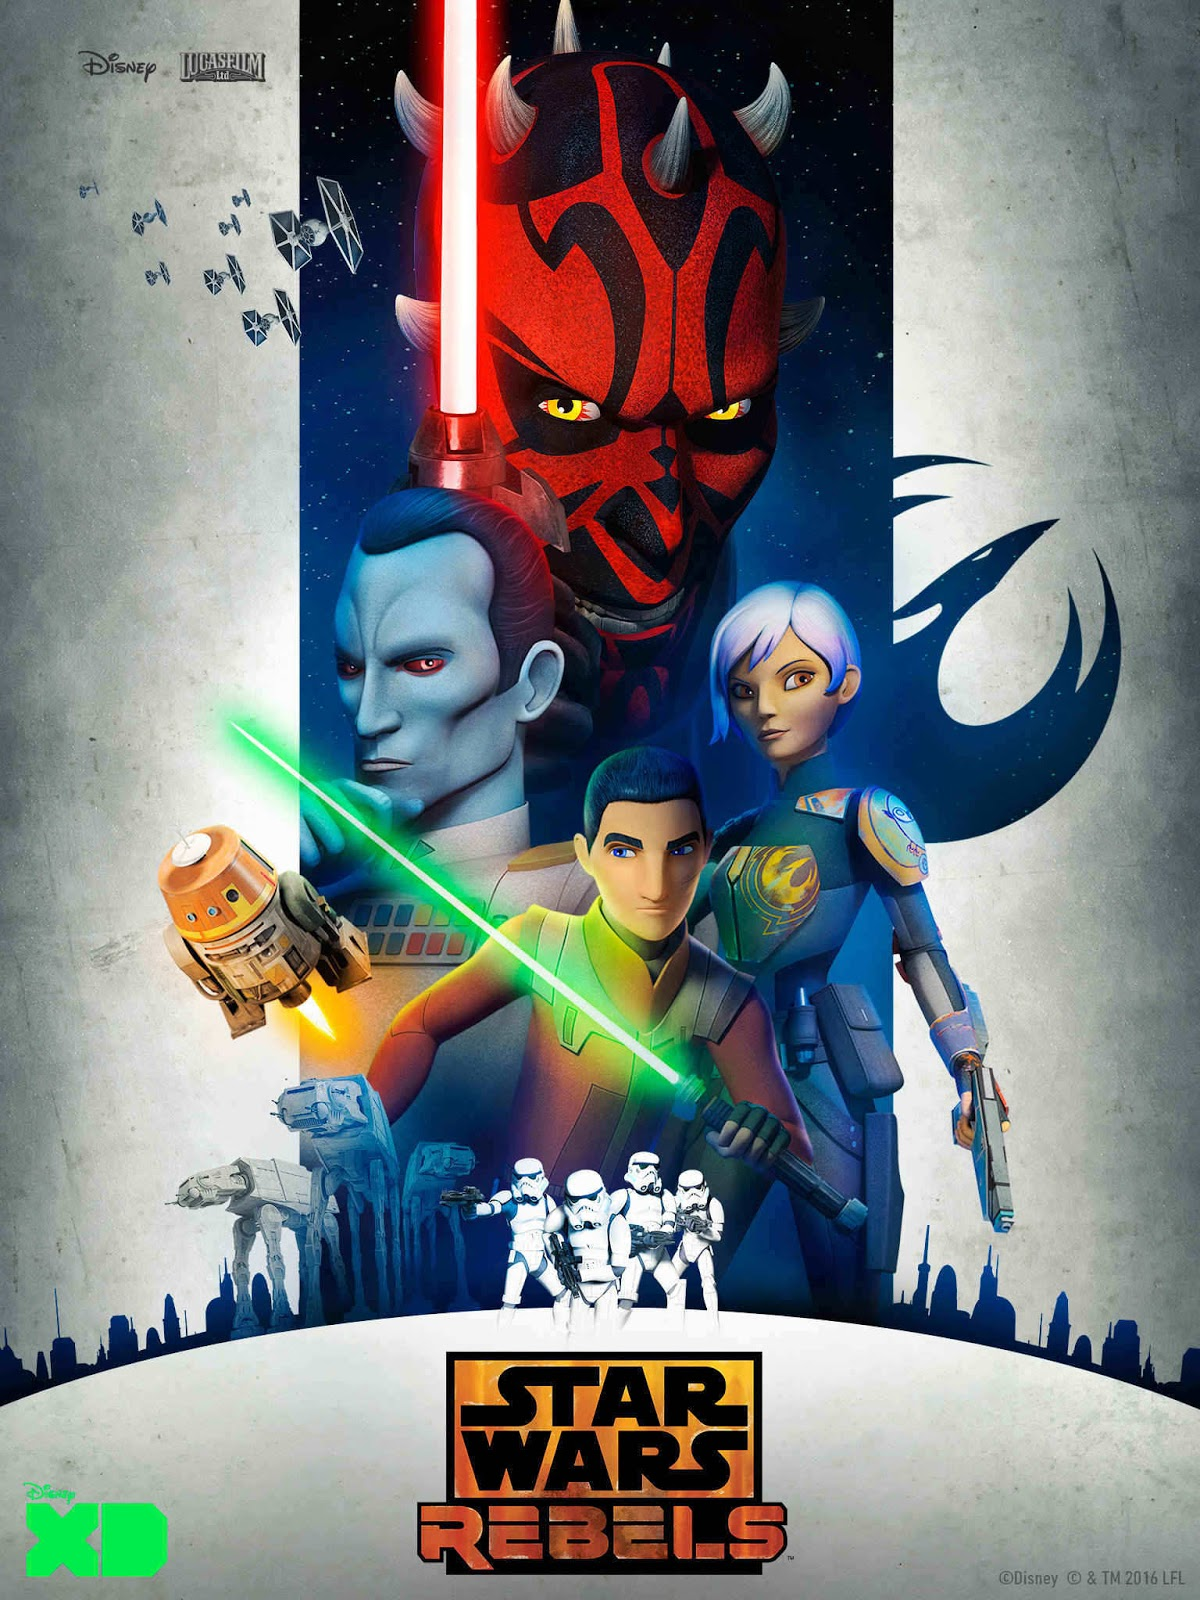 5 little angels star wars rebels season 3 premiers on 15 october on